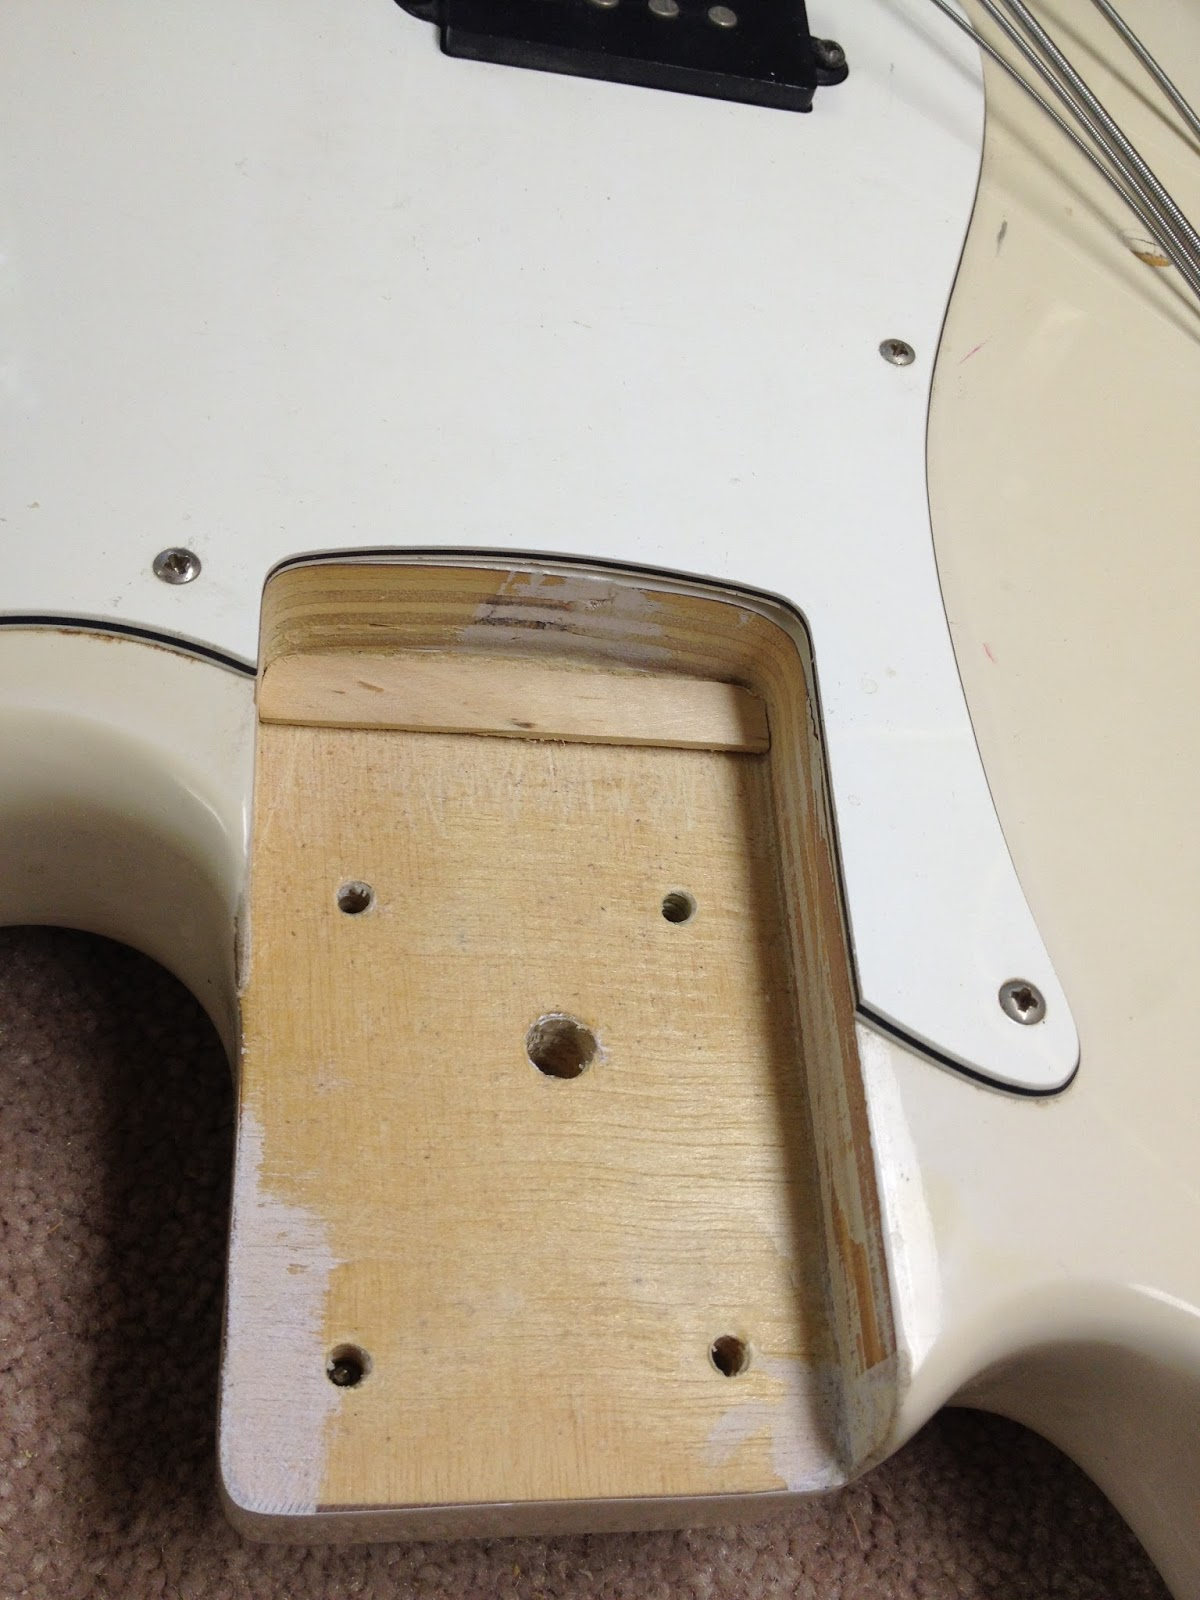 a wiring diagram for this p-bass style axe was just a few keystrokes  away  it took almost as long to warm up my soldering iron as it did to make  the